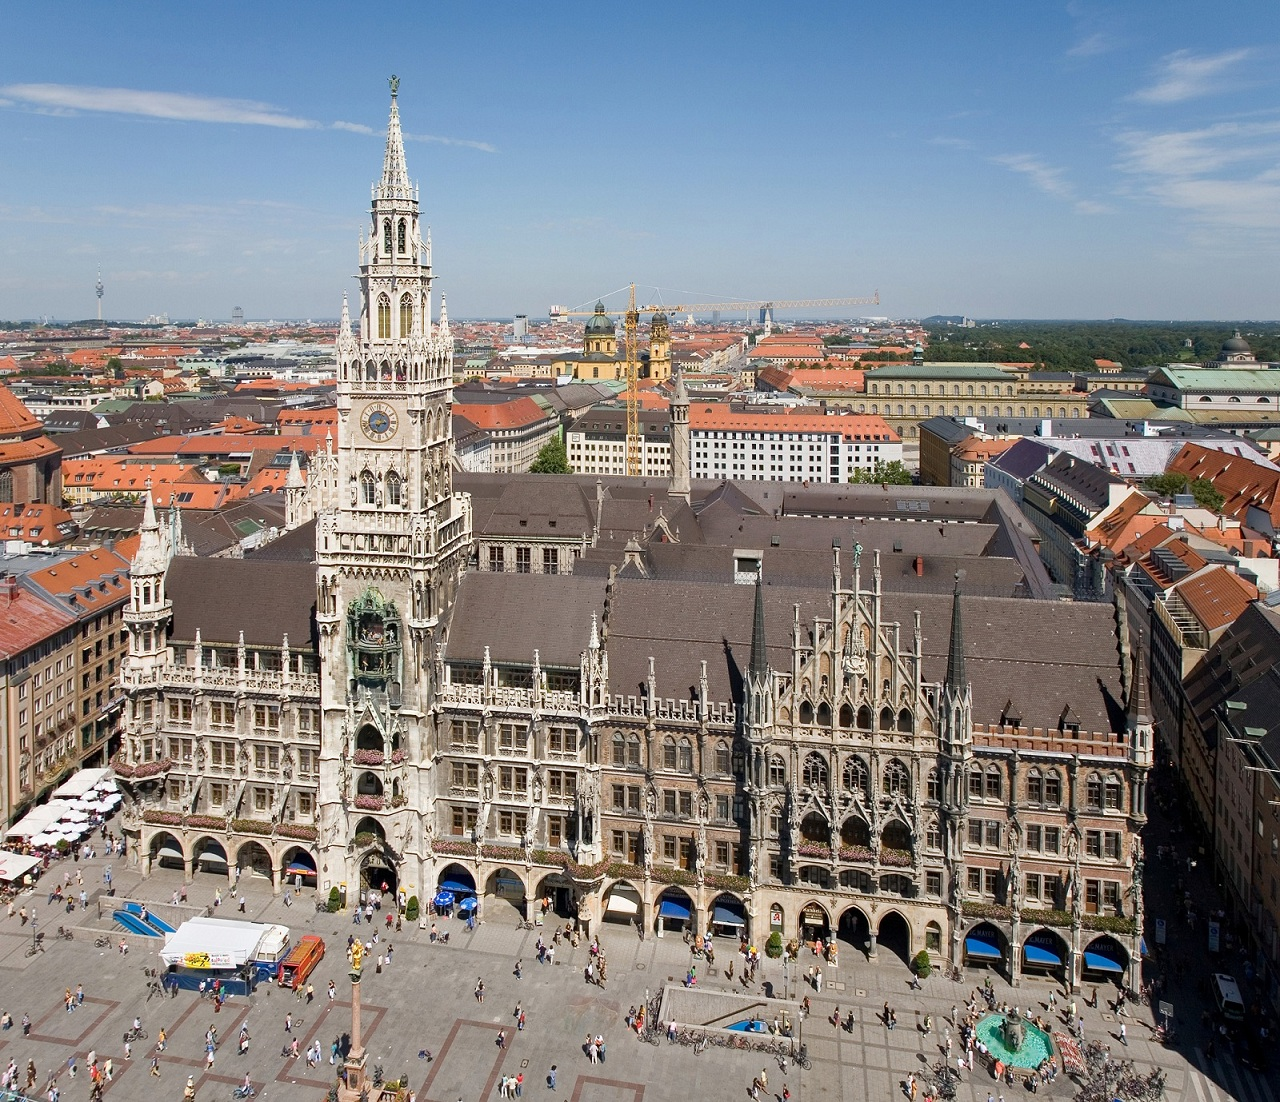 Germany Holiday, Munich, Germany, Marienplatz aerial view